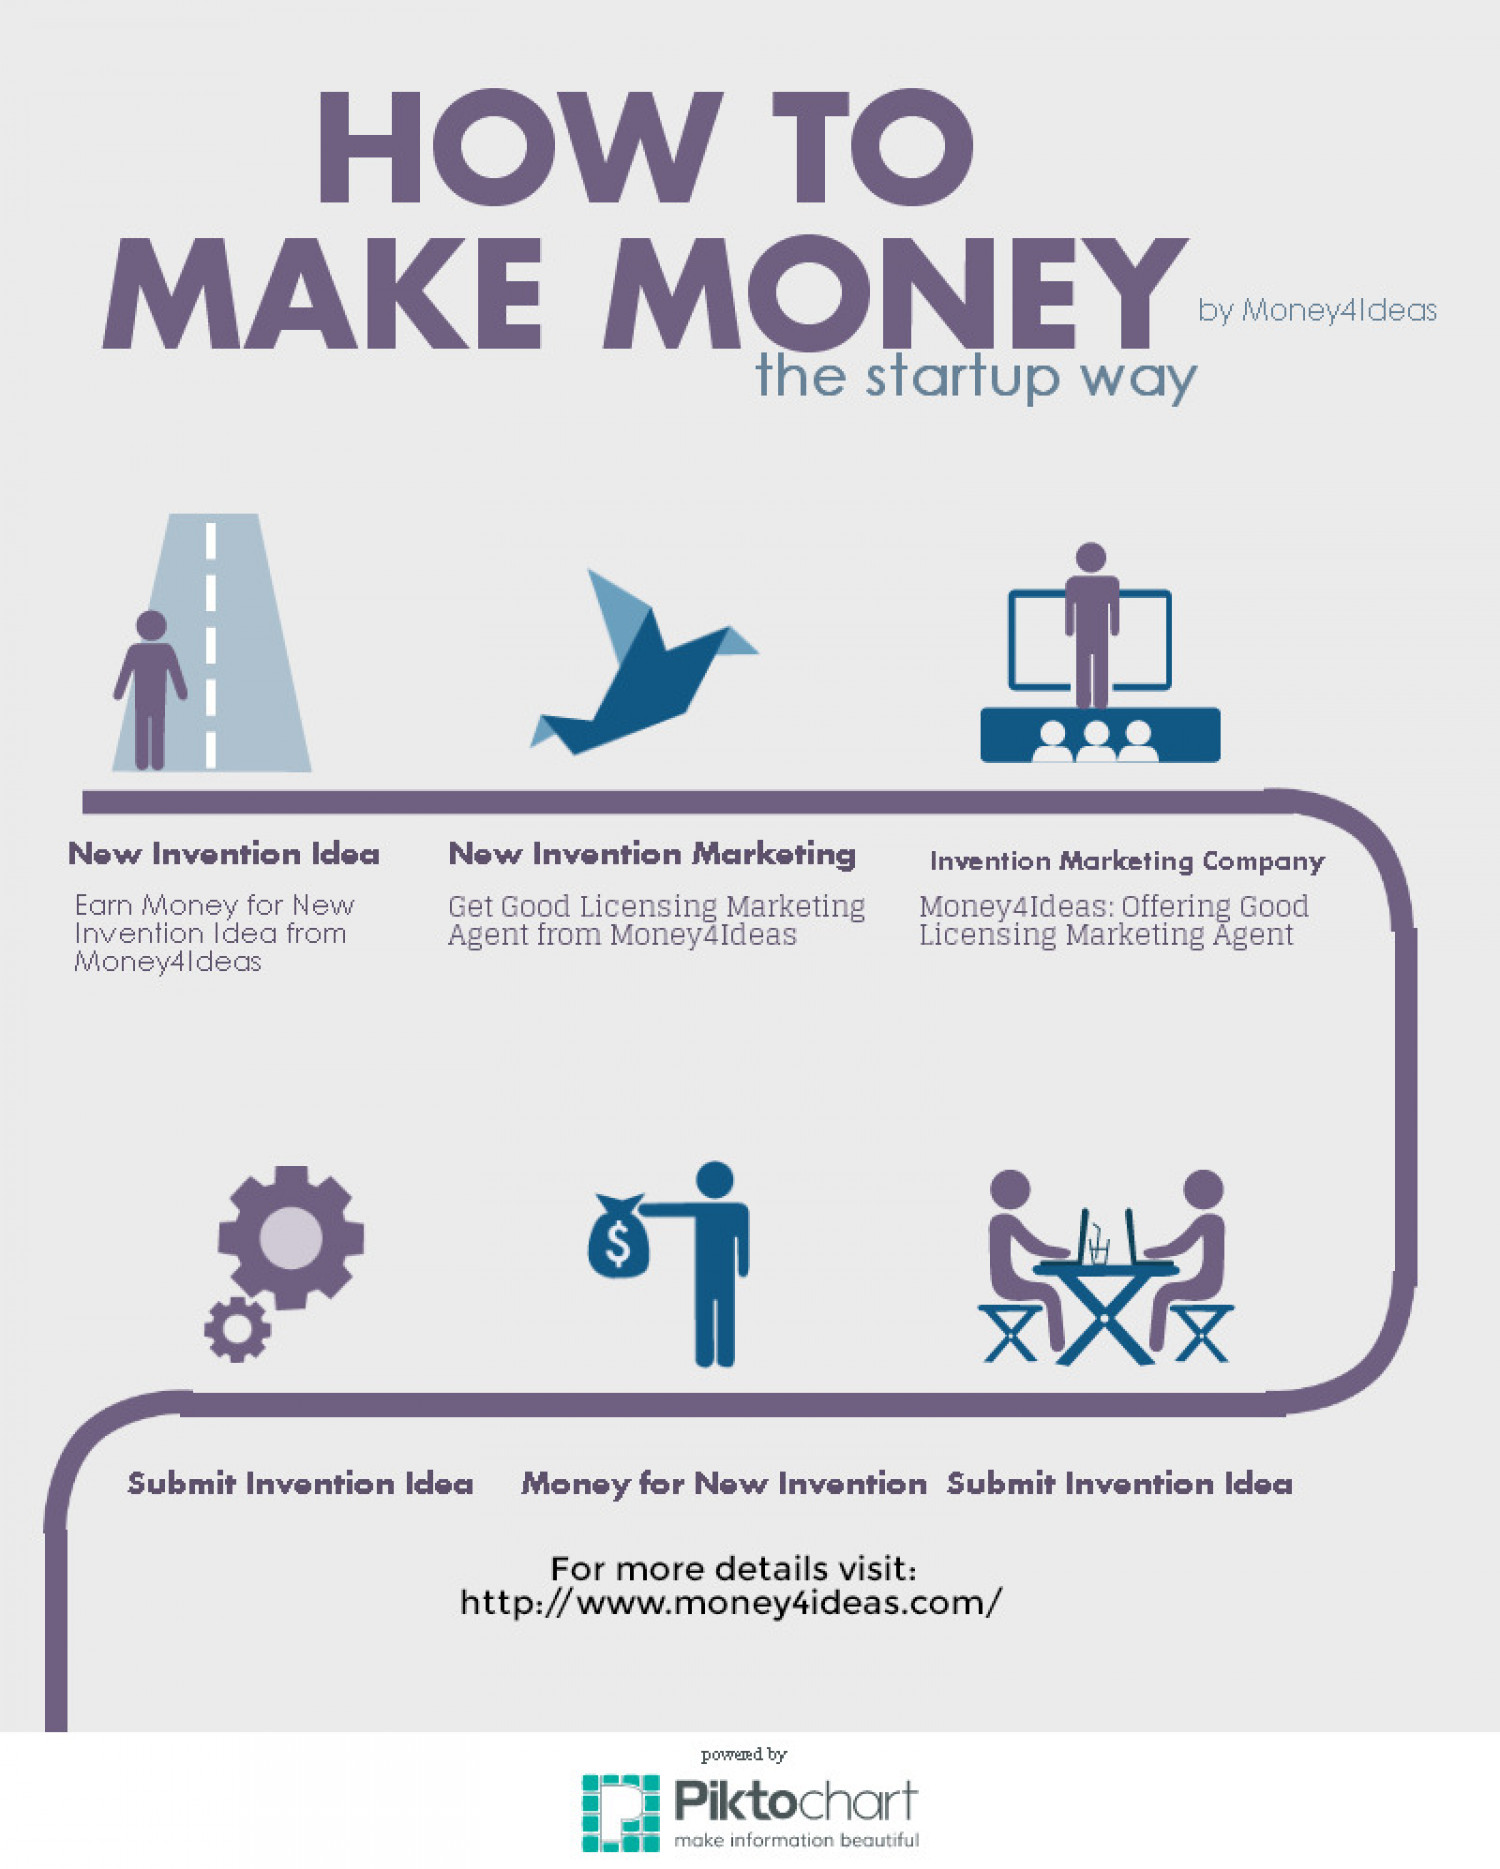 Earn Money for New Invention Idea from Money4Ideas Infographic